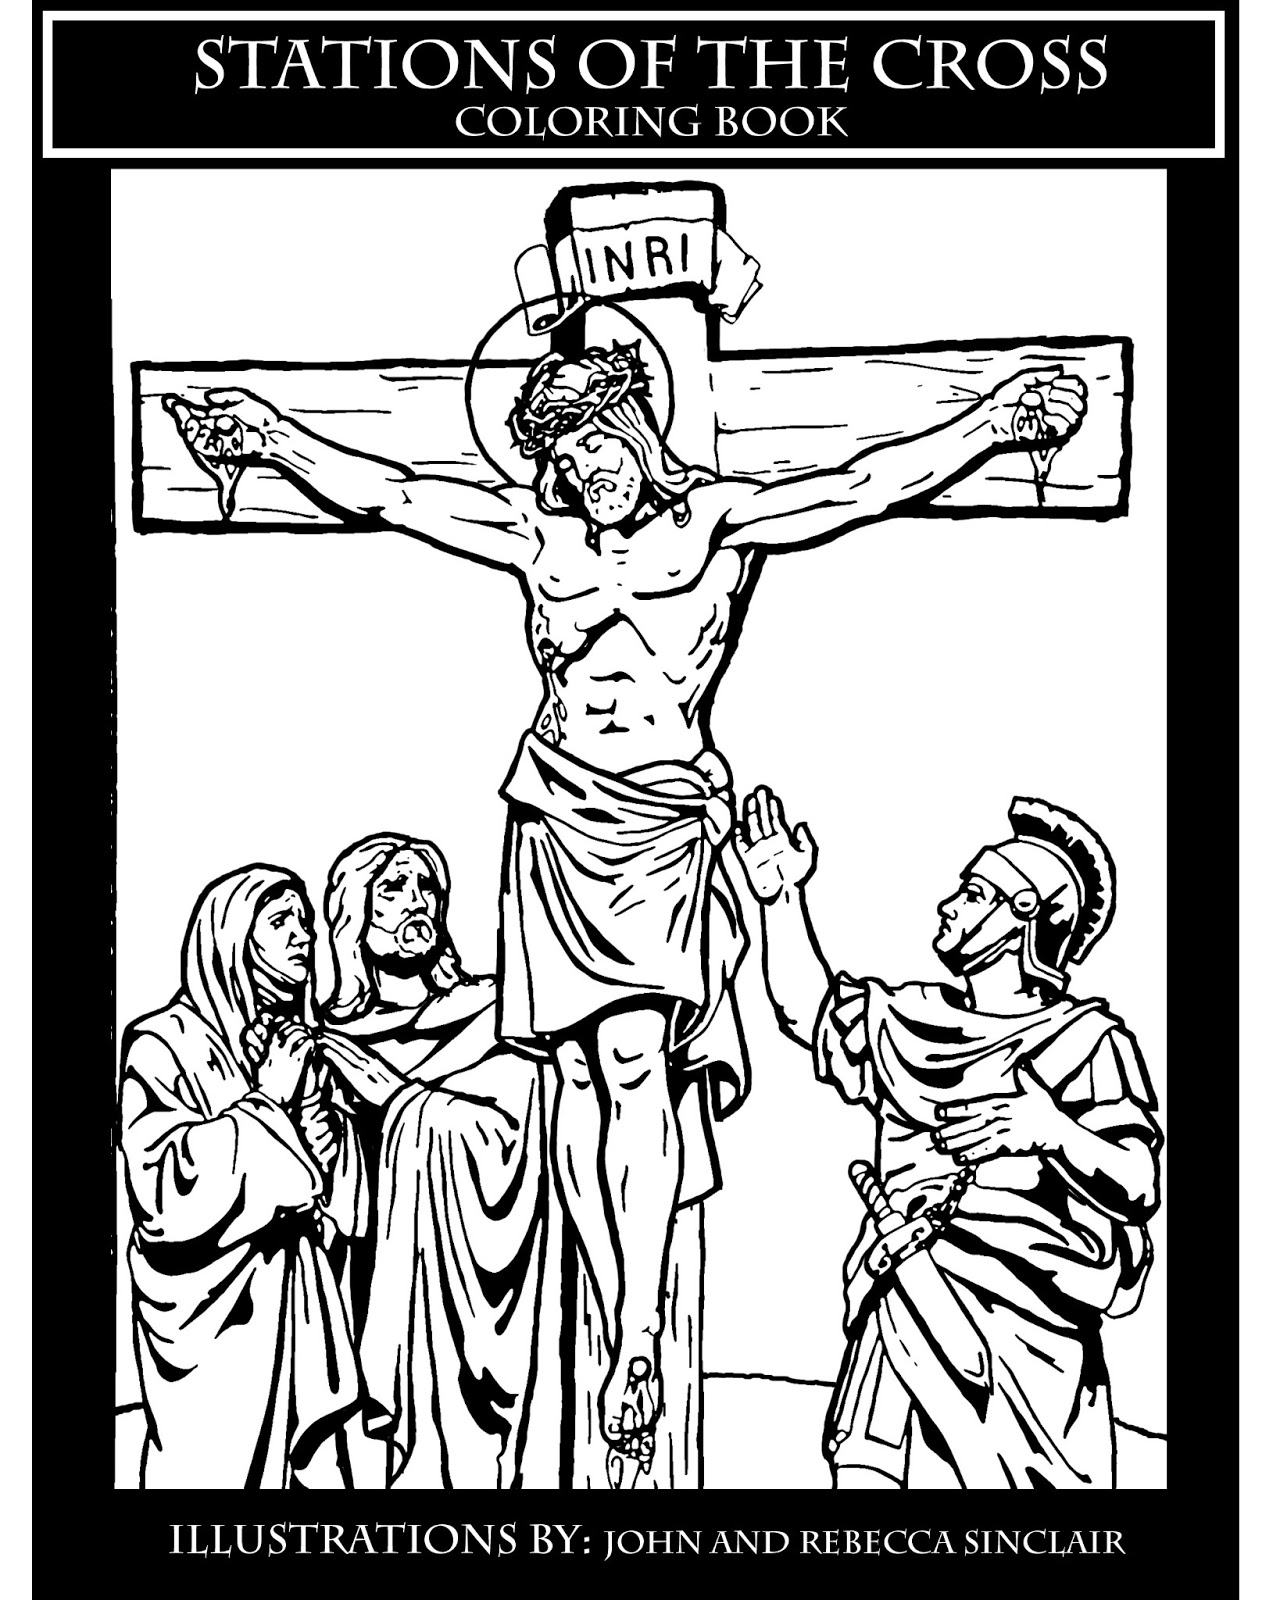 The stations of the cross coloring pages ~ Art Blog